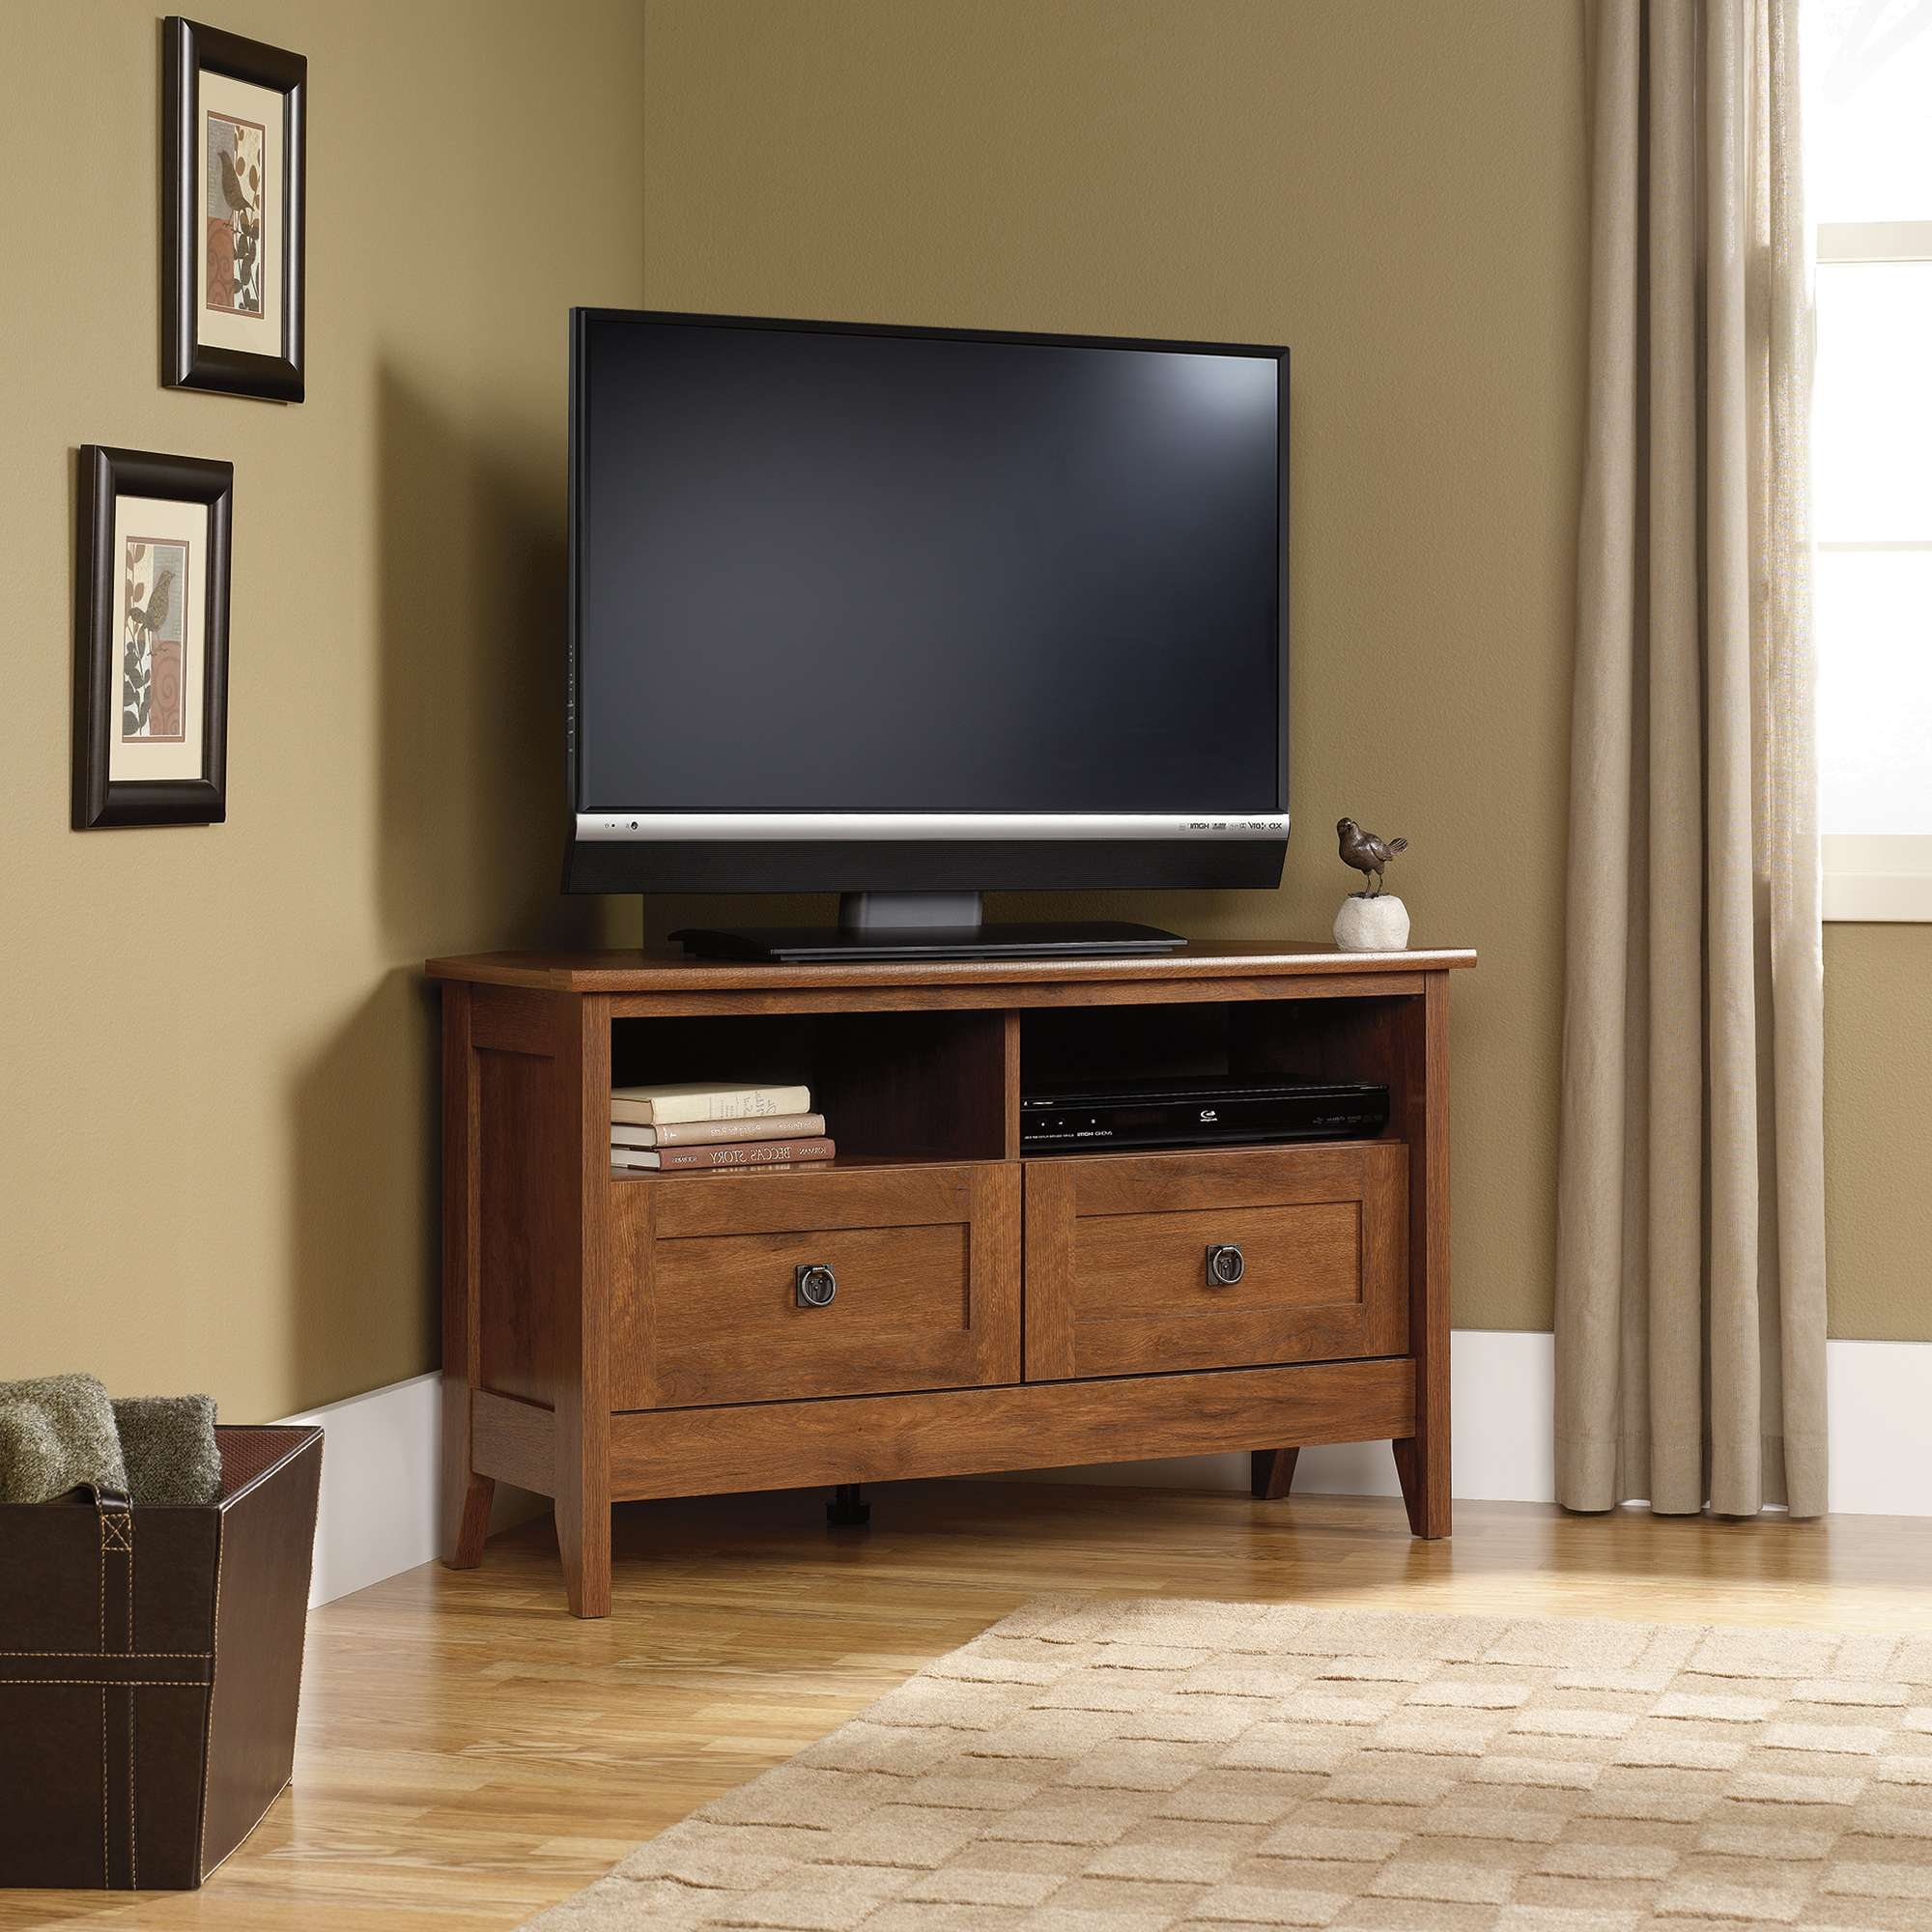 Tv Stand : Black Corner Fireplace Tv Stand Natural Wood Standtv With Regard To Flat Screen Tv Stands Corner Units (View 8 of 20)